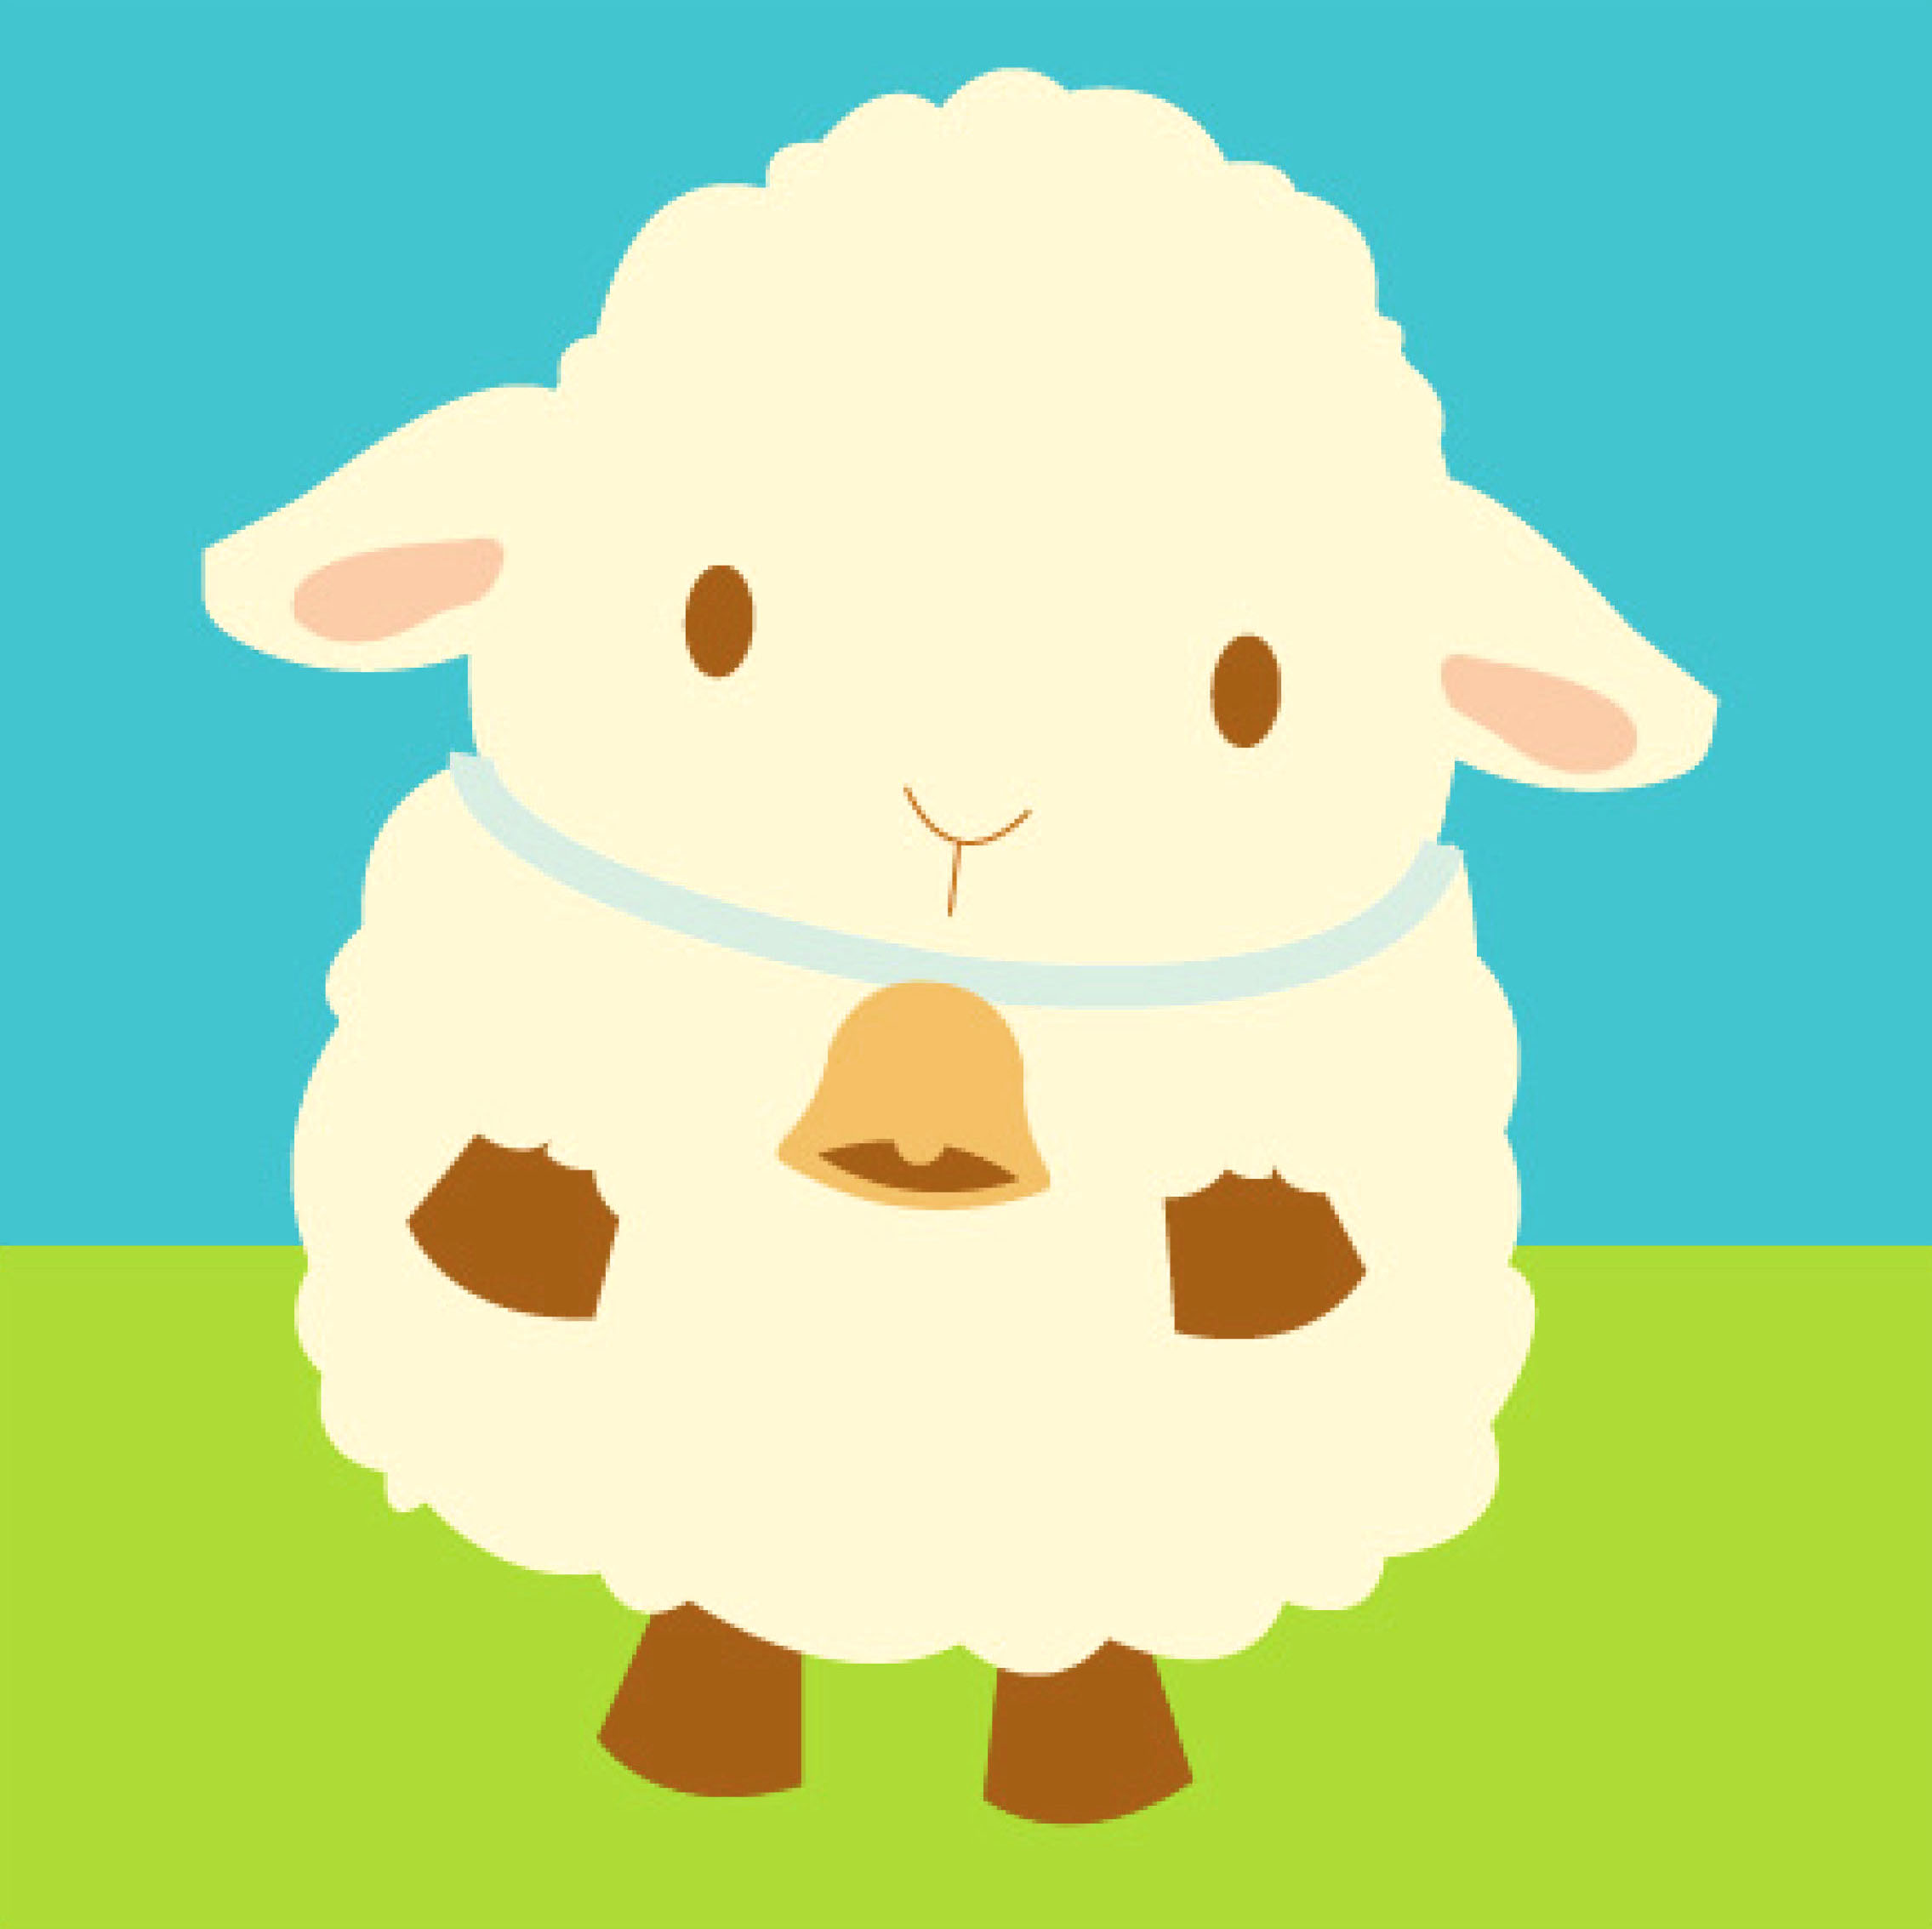 Cute sheep baby lambs flock free clipart vector image black and white Free Cute Sheep Pictures, Download Free Clip Art, Free Clip ... image black and white